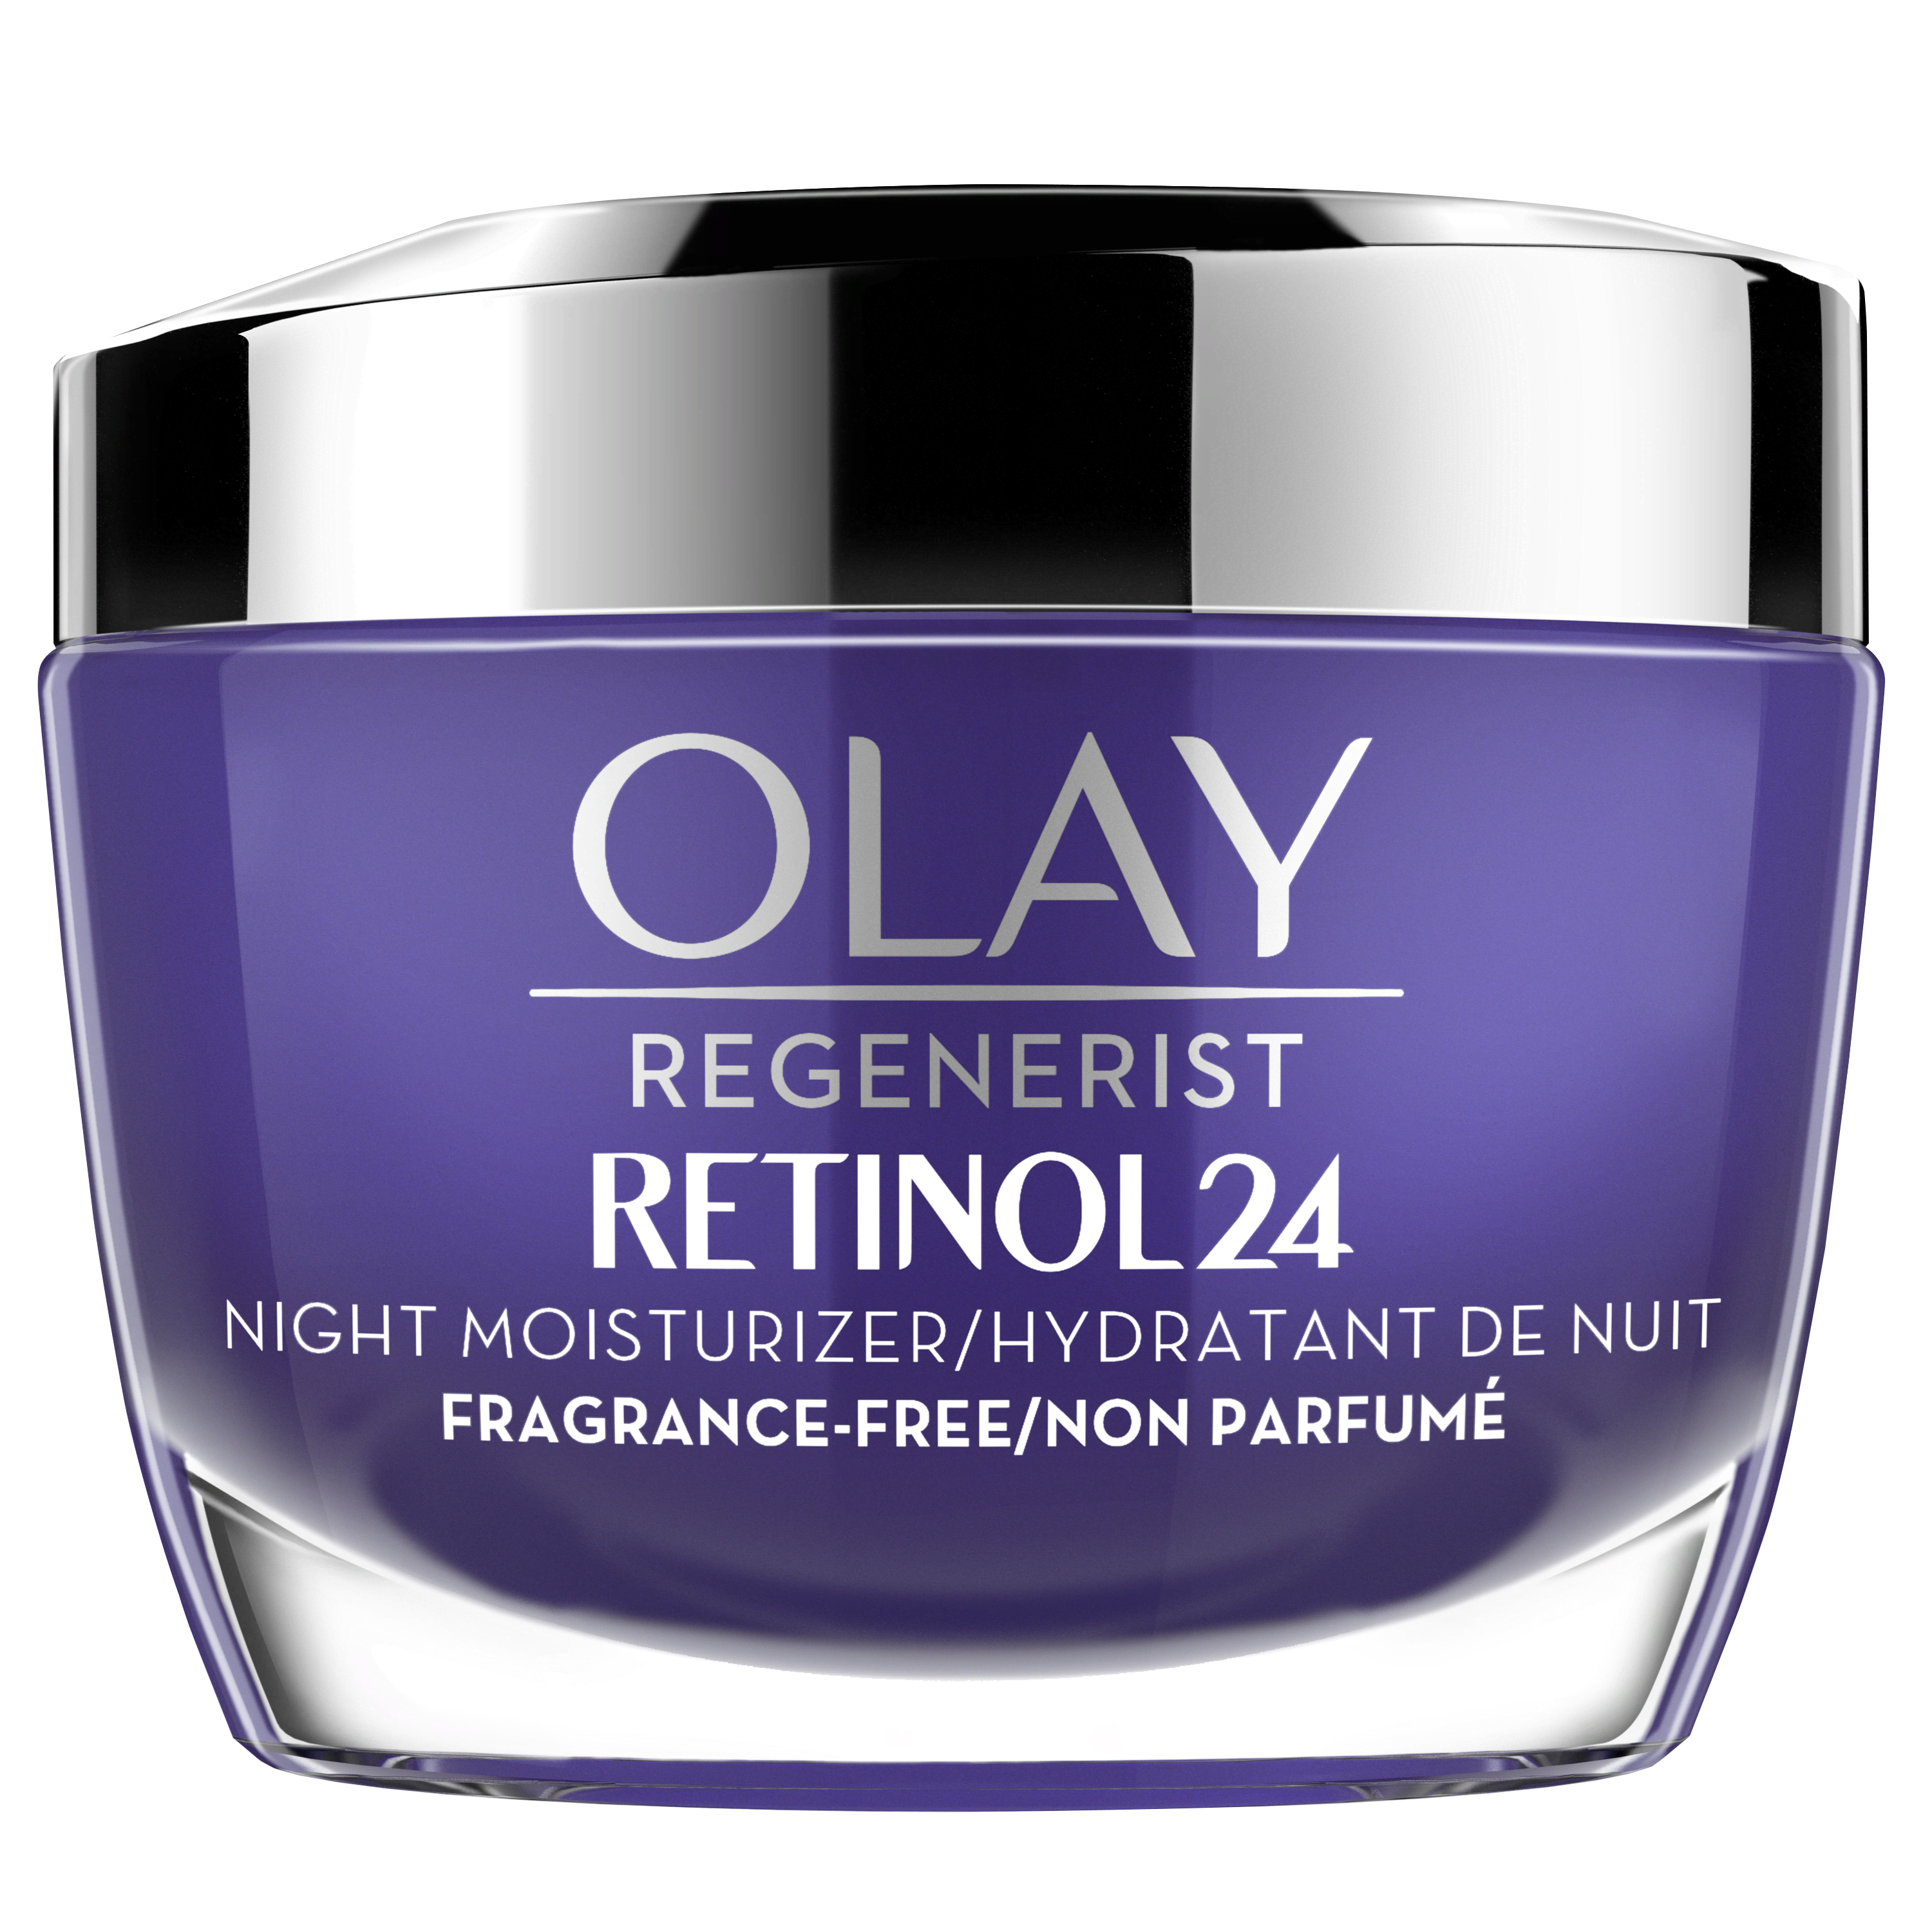 Olay Regenerist Retinol24 Night Moisturizer 50 mL